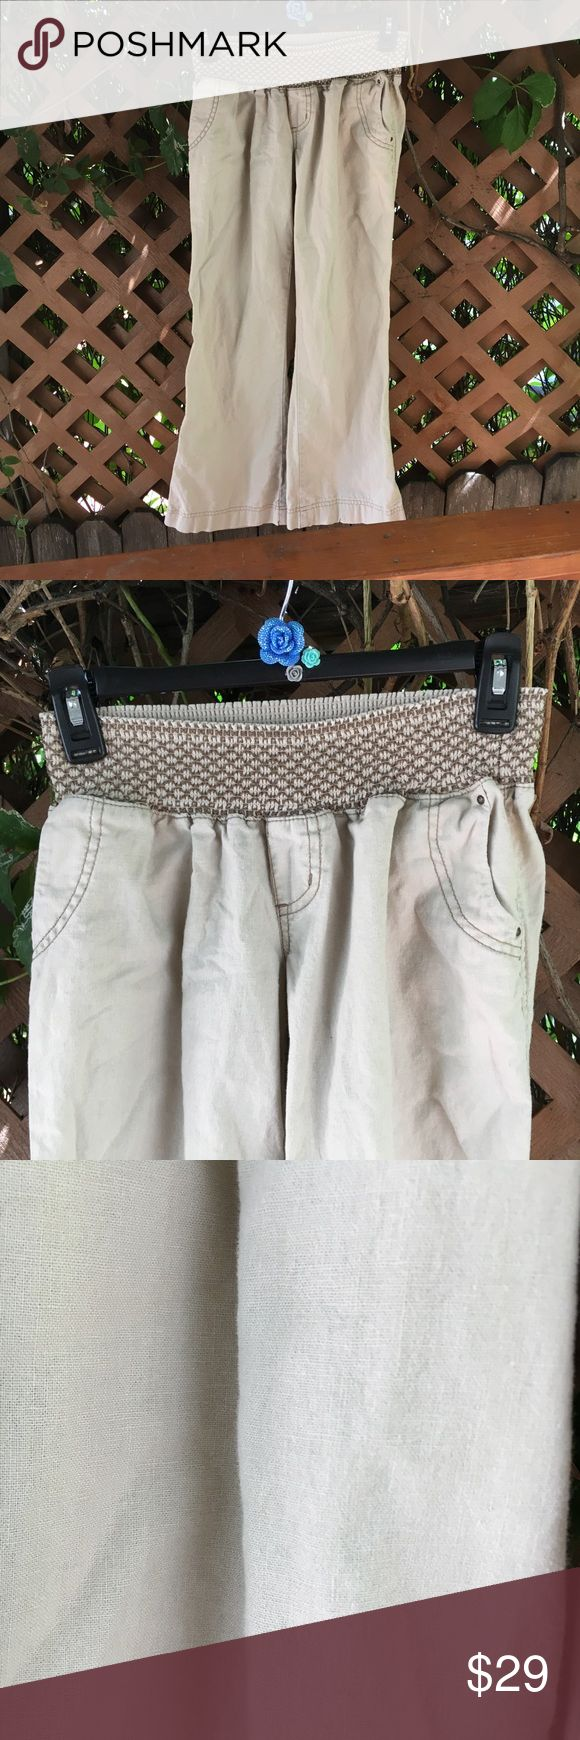 {Rewash} Khaki Linen Blend Wide Leg Culottes S Like new! Beautiful, comfortable and so on trend! Khaki or tan color linen and cotton blend wide leg capris. Retro boho vibes. So hot right now! Light and breezy and oh so versatile. Cool embroidered wide elastic waist. Rewash Pants Capris